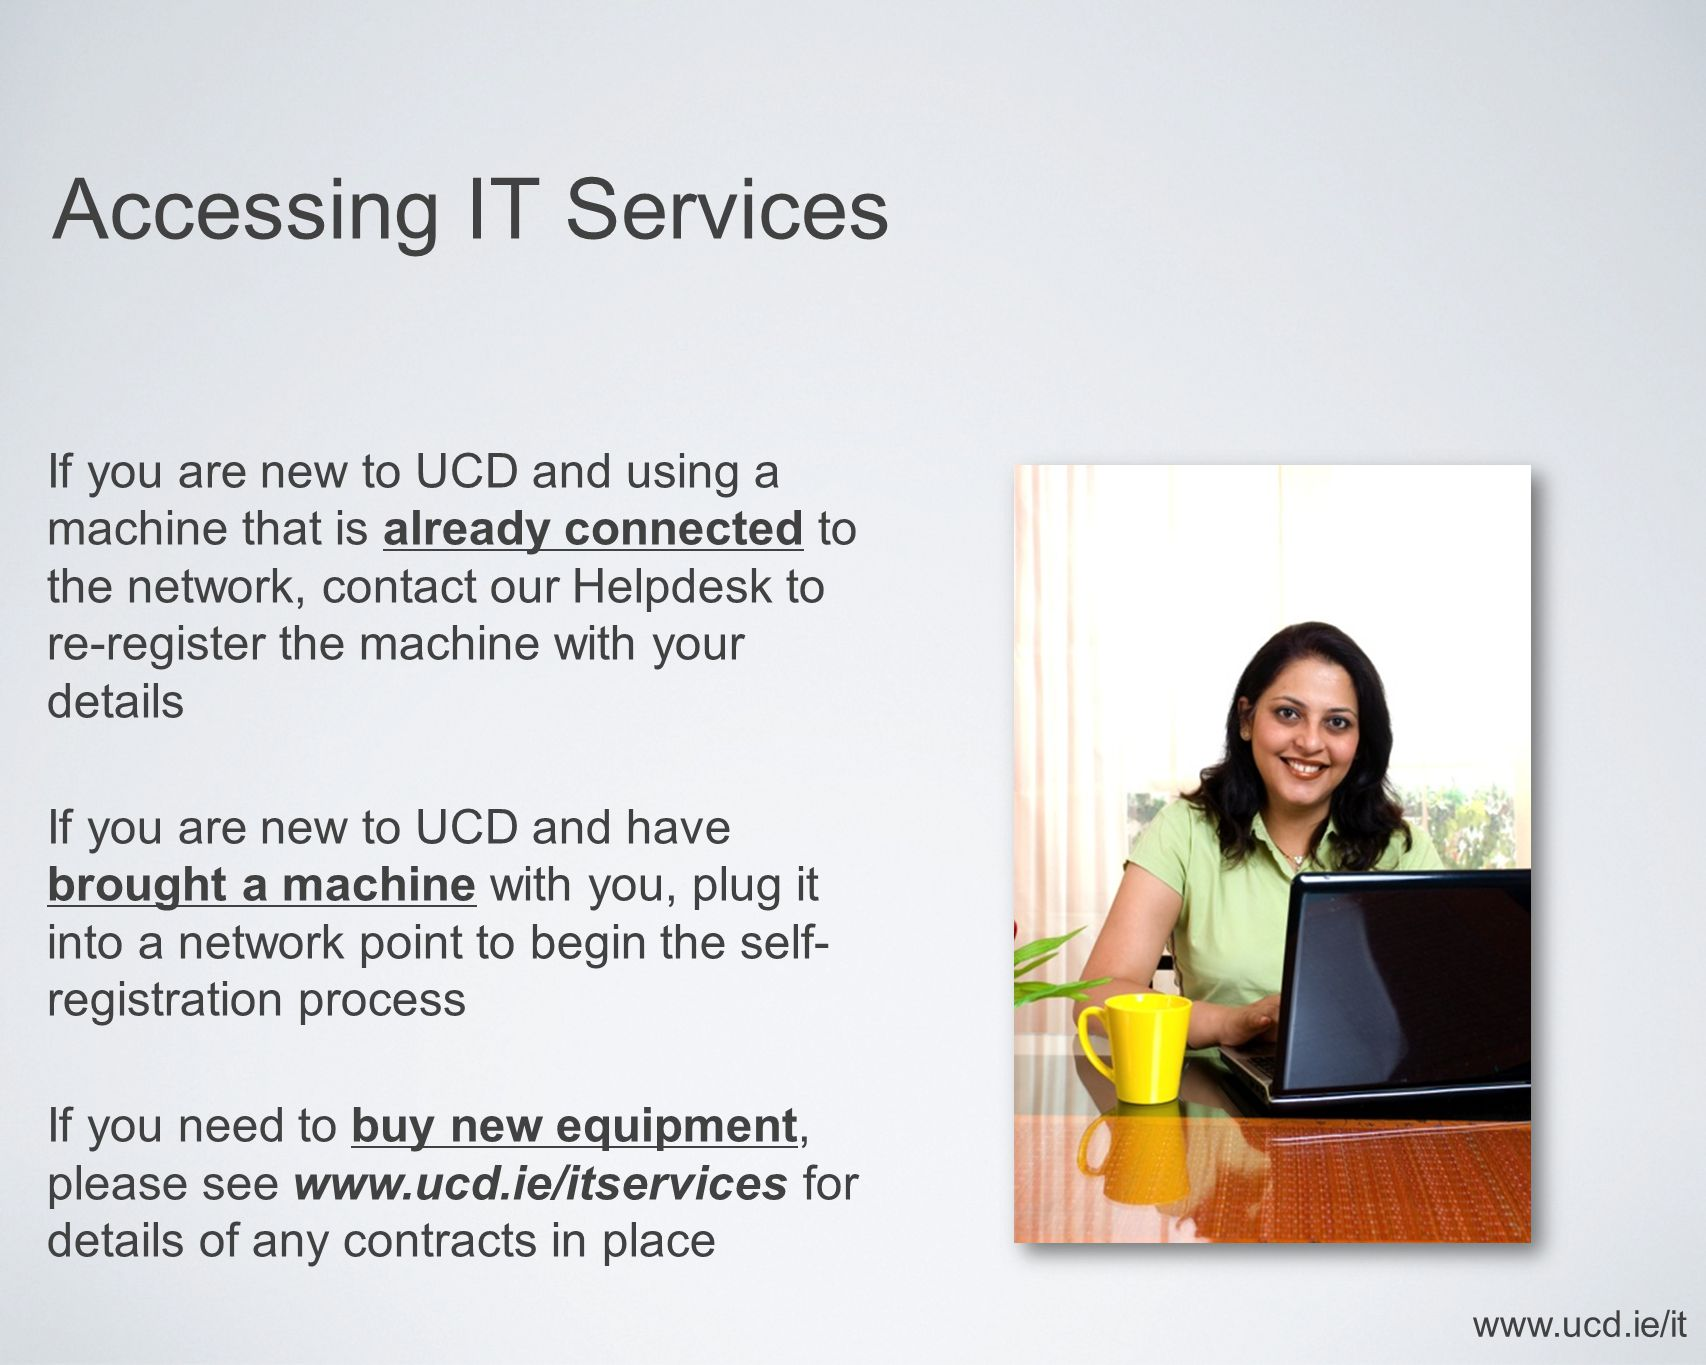 Accessing IT Services www.ucd.ie/it If you are new to UCD and using a machine that is already connected to the network, contact our Helpdesk to re-register the machine with your details If you are new to UCD and have brought a machine with you, plug it into a network point to begin the self- registration process If you need to buy new equipment, please see www.ucd.ie/itservices for details of any contracts in place